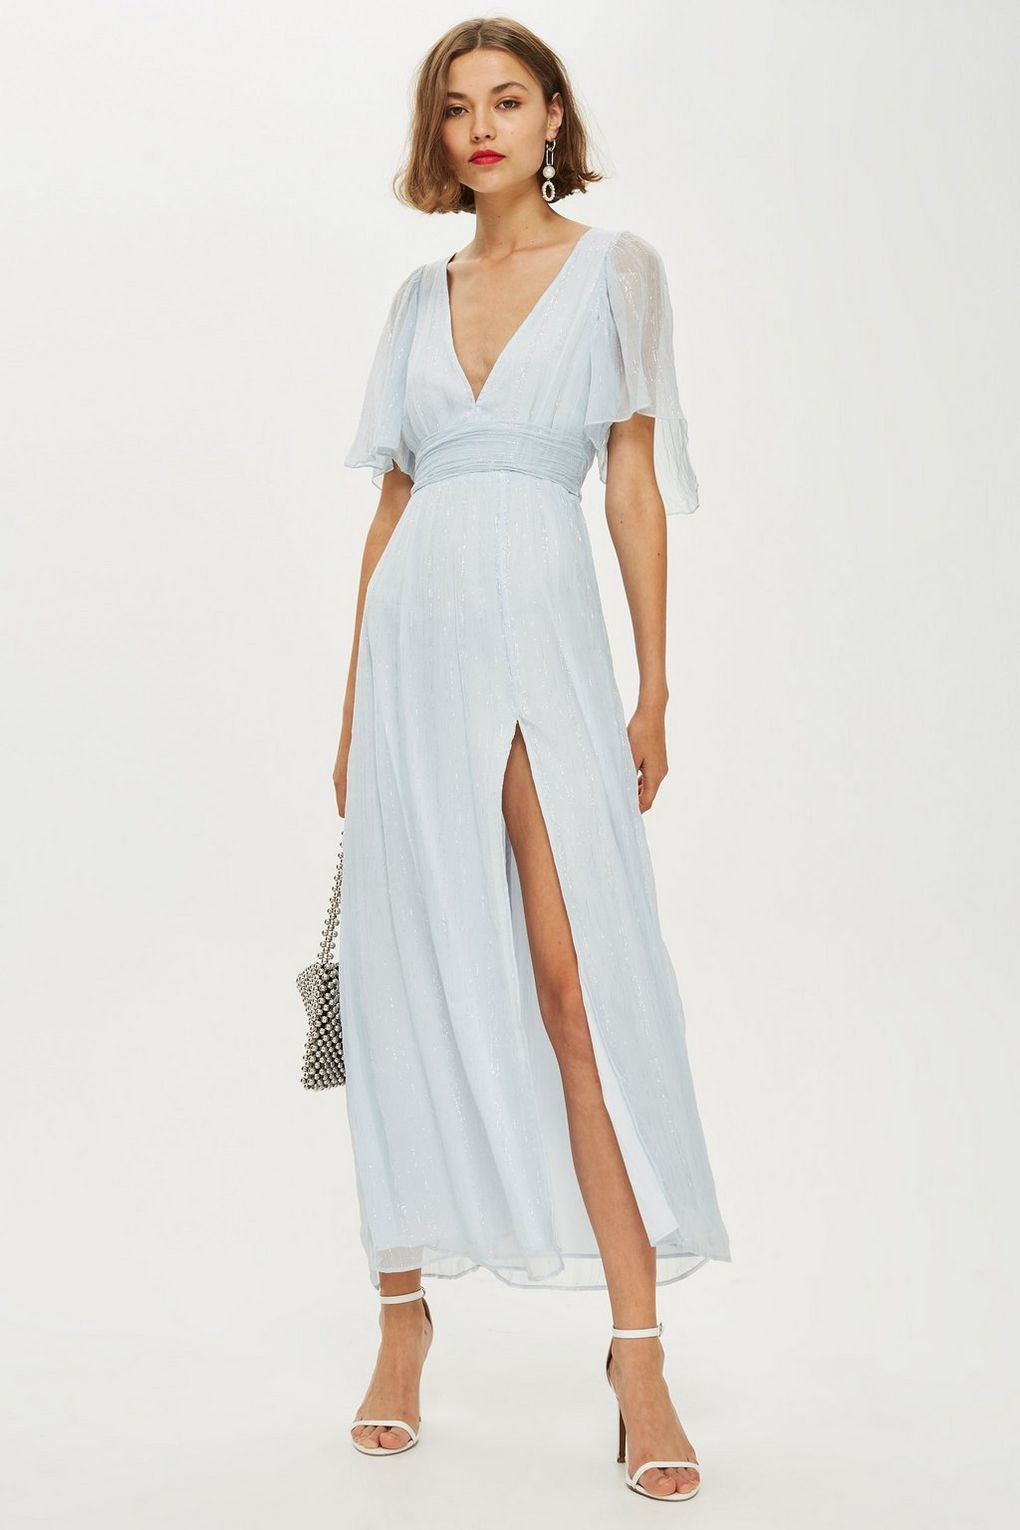 628526e881 Metallic Striped Plunge Dress - Dresses - Clothing - Topshop USA